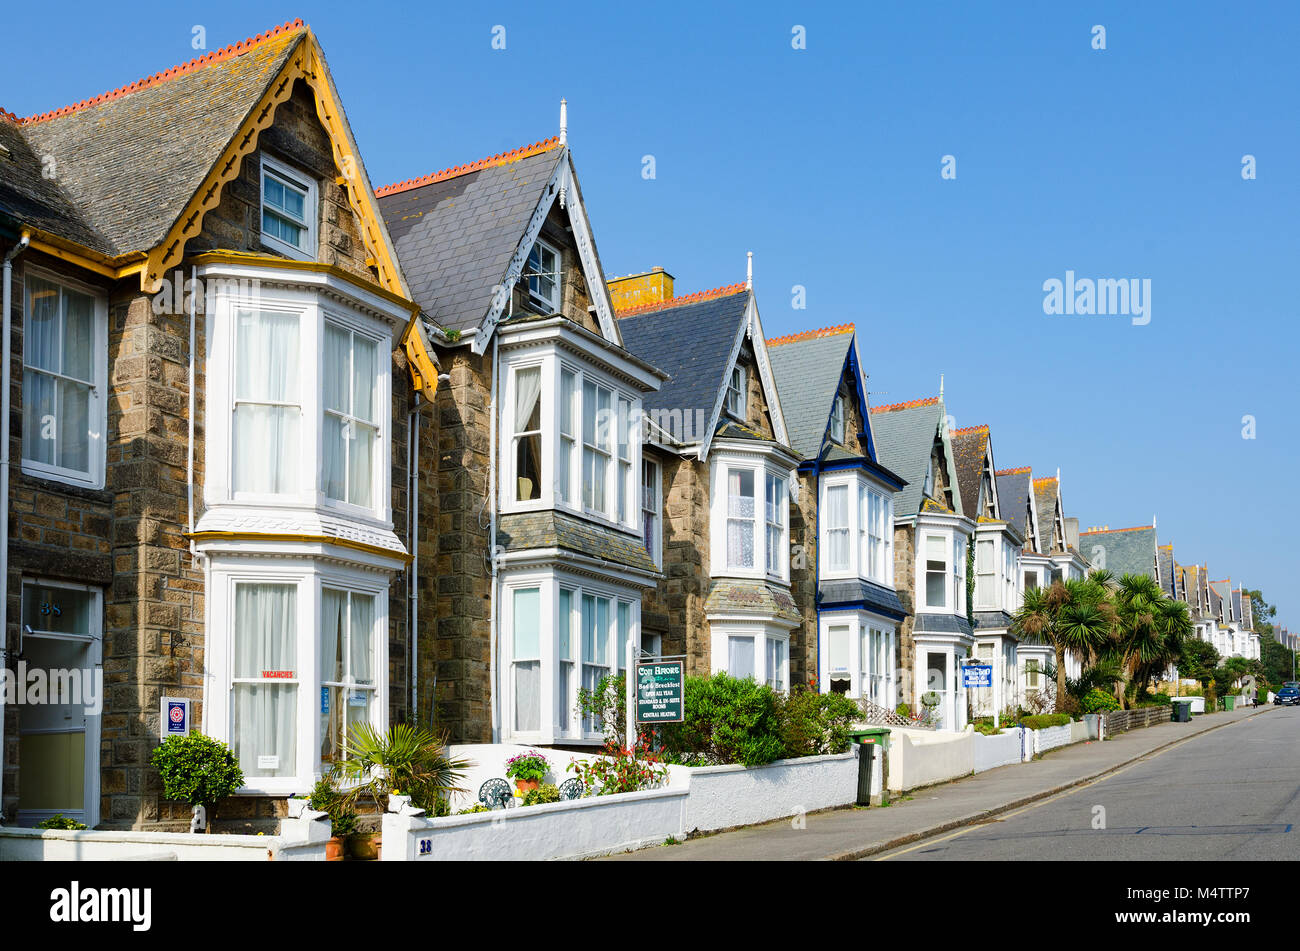 hotels, bed and breakfast accomodation in a residential street, penzance, cornwall, england, britain, uk. - Stock Image